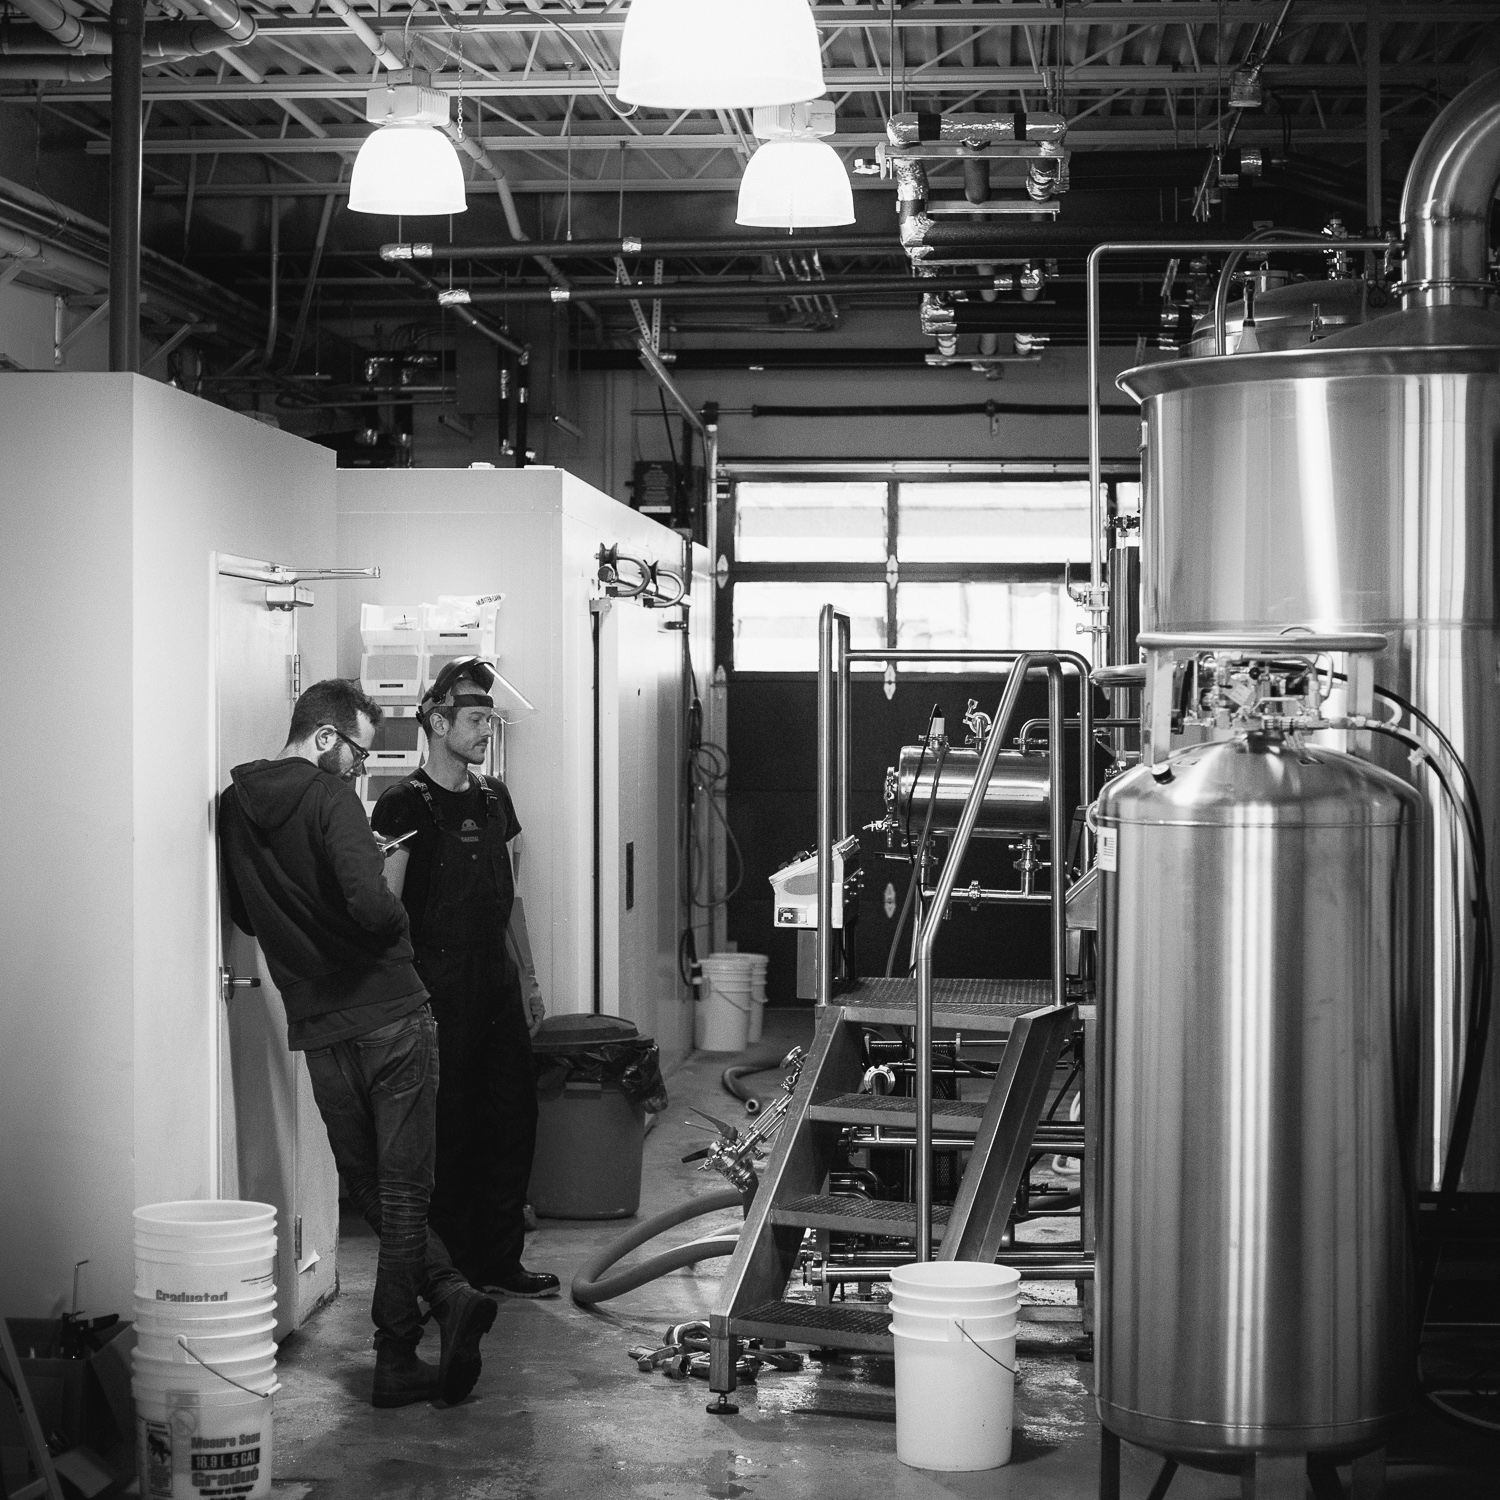 Callum and Eric from Halo Brewery in a brief respite between cleaning tasks.